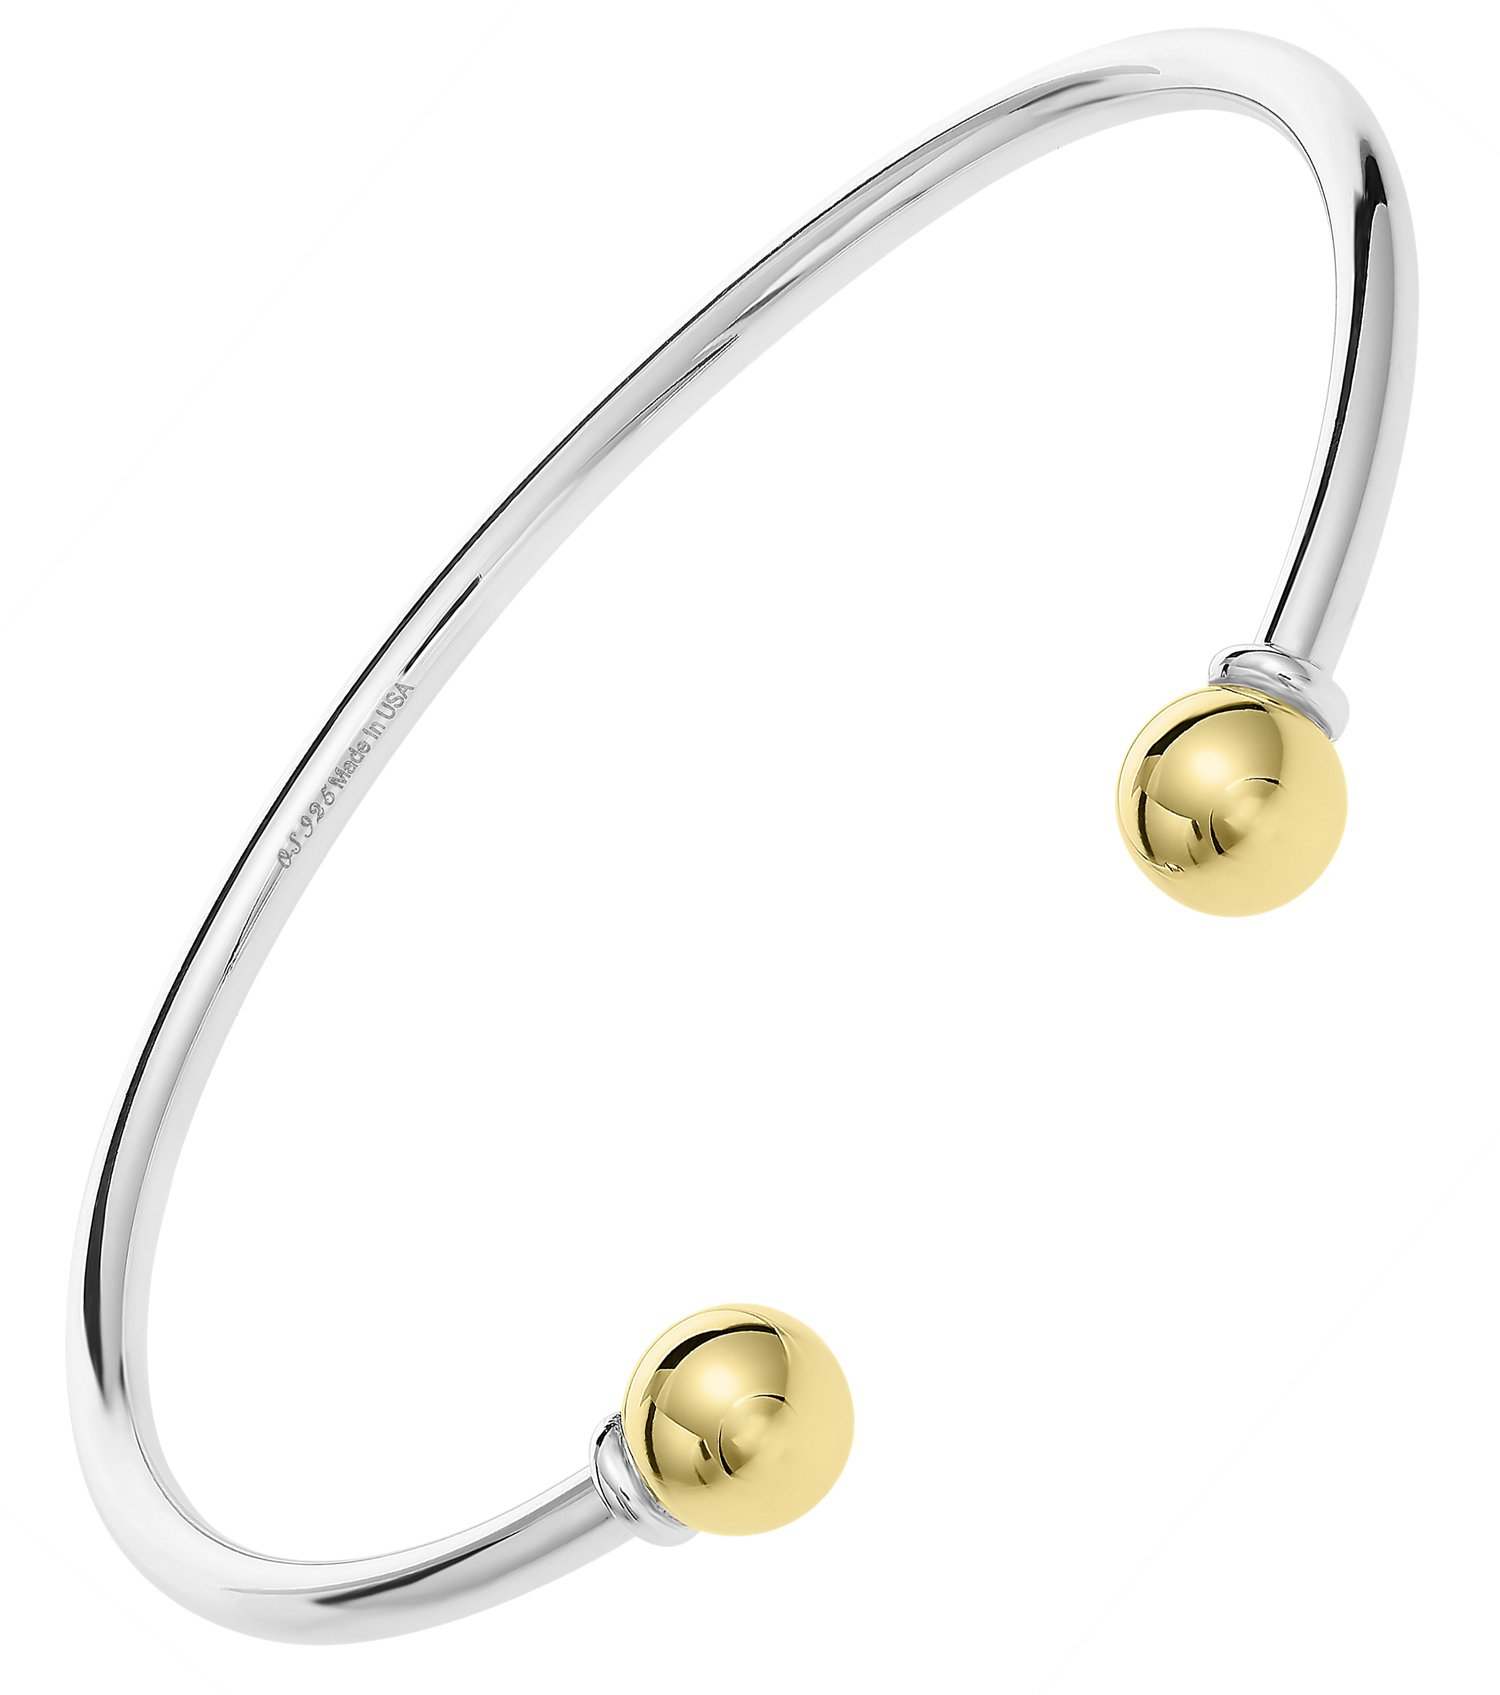 Ocean side bracelets Unique Royal Jewelry Solid 925 Sterling Silver and 14k solid Gold 2-Ball Cuff Bracelet (Size 6)